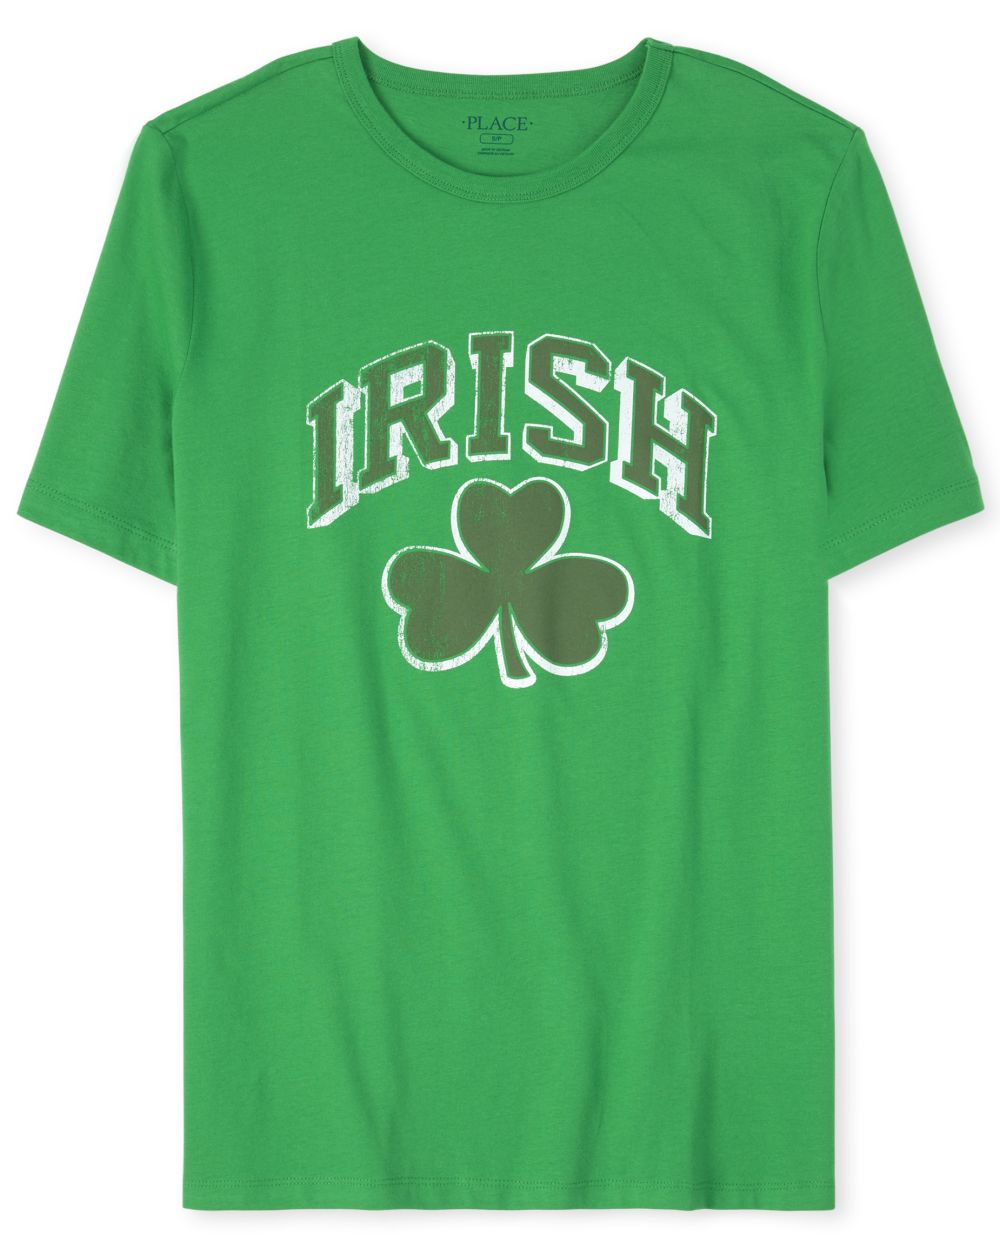 Mens Matching Family Shamrock Graphic Tee